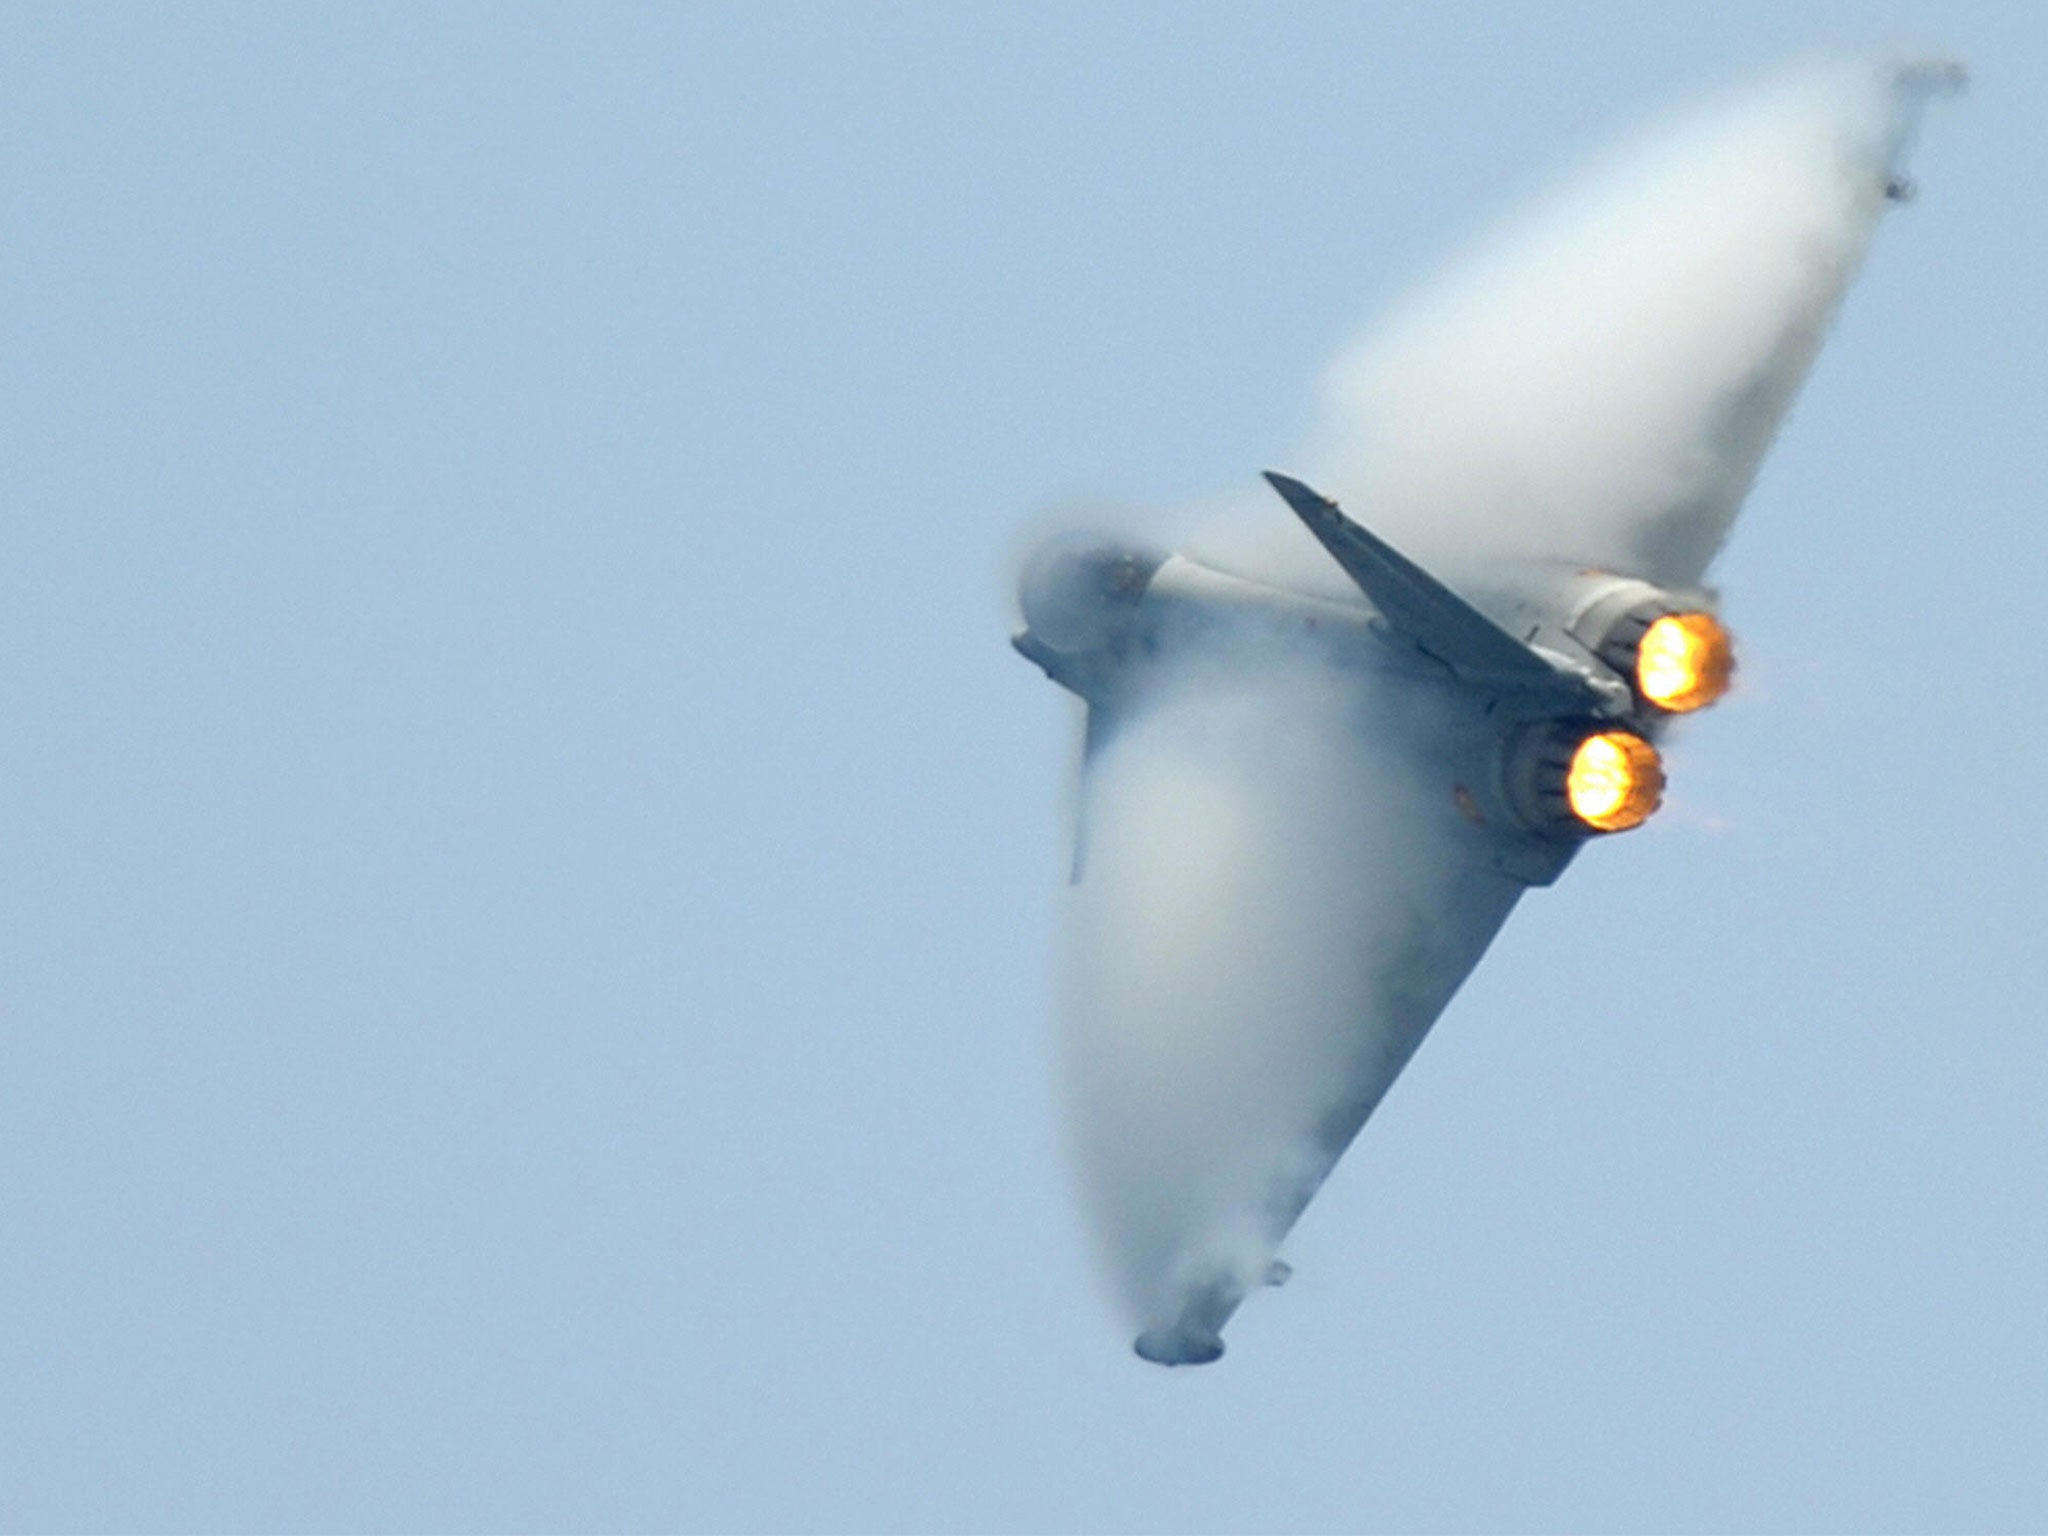 Spanish fighter jet accidentally fires missile near Russian